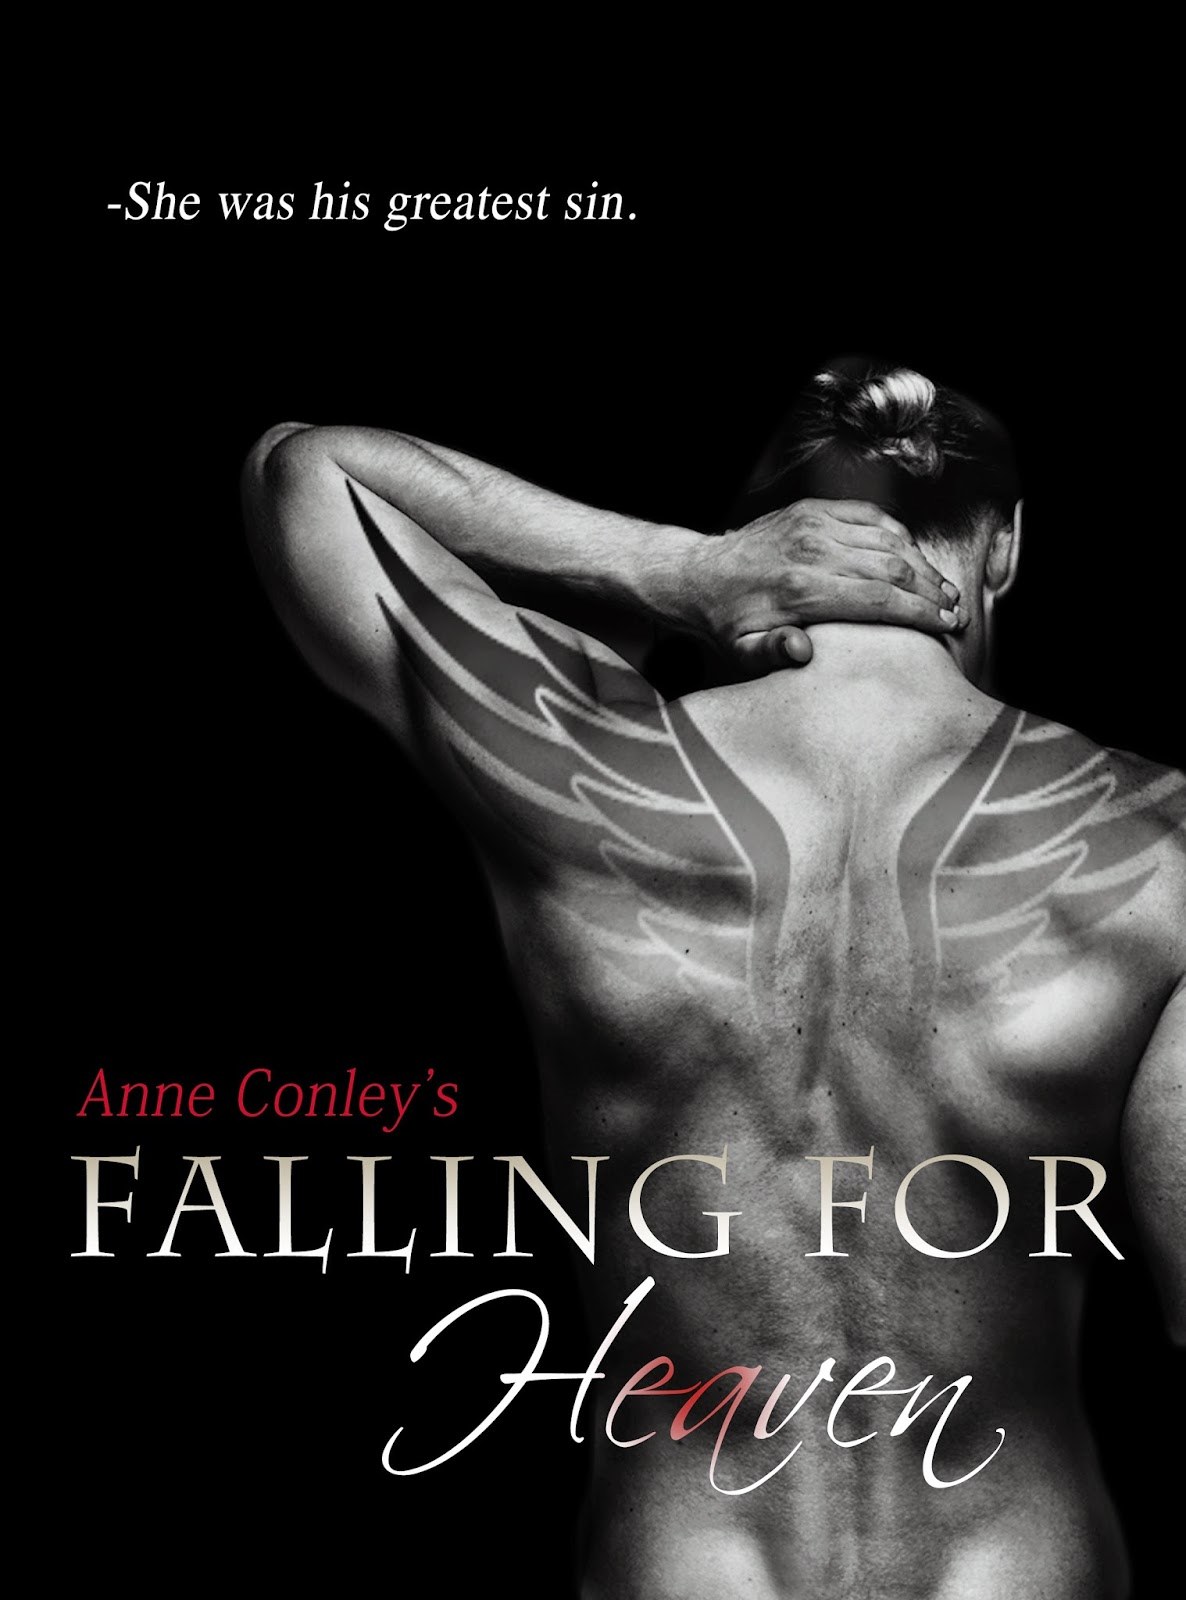 https://www.amazon.com/Falling-Heaven-Four-Winds-1-ebook/dp/B00CH1PC1W/ref=as_sl_pc_tf_til?tag=theconcor-20&linkCode=w00&linkId=SMB4LEEPFRGSTWYM&creativeASIN=B00CH1PC1W